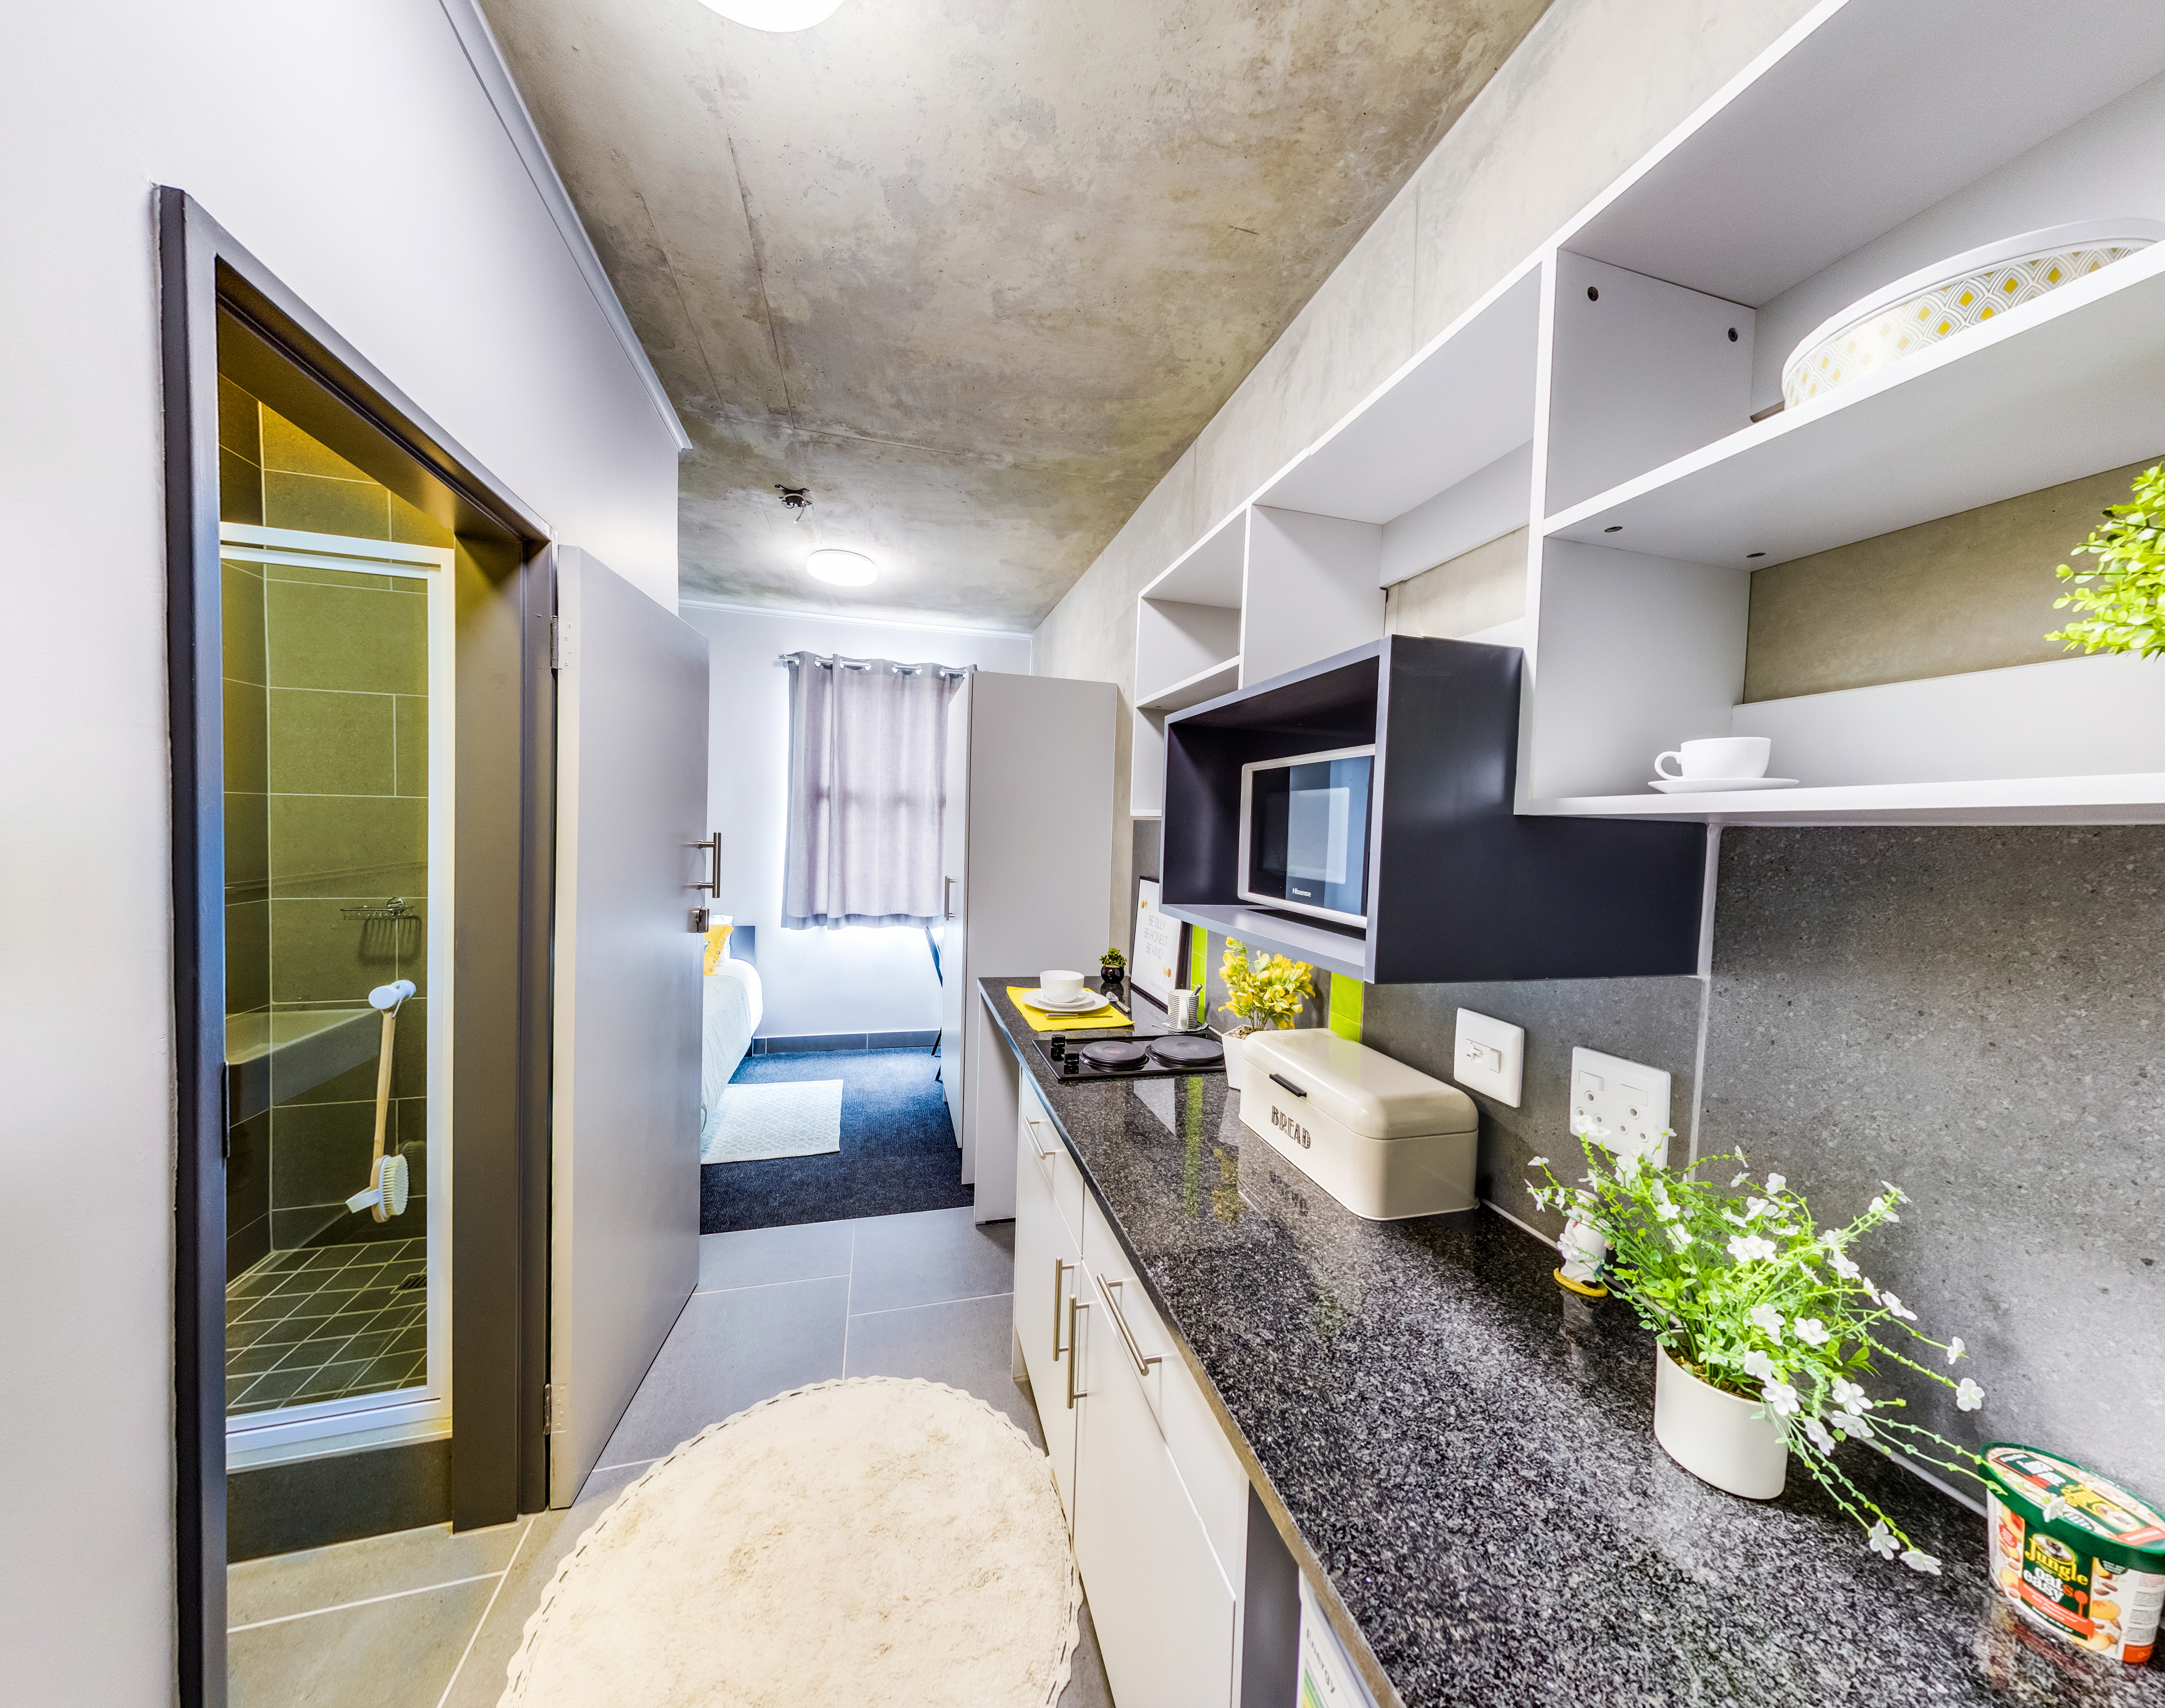 Student Accommodation In South Africa Digsconnect